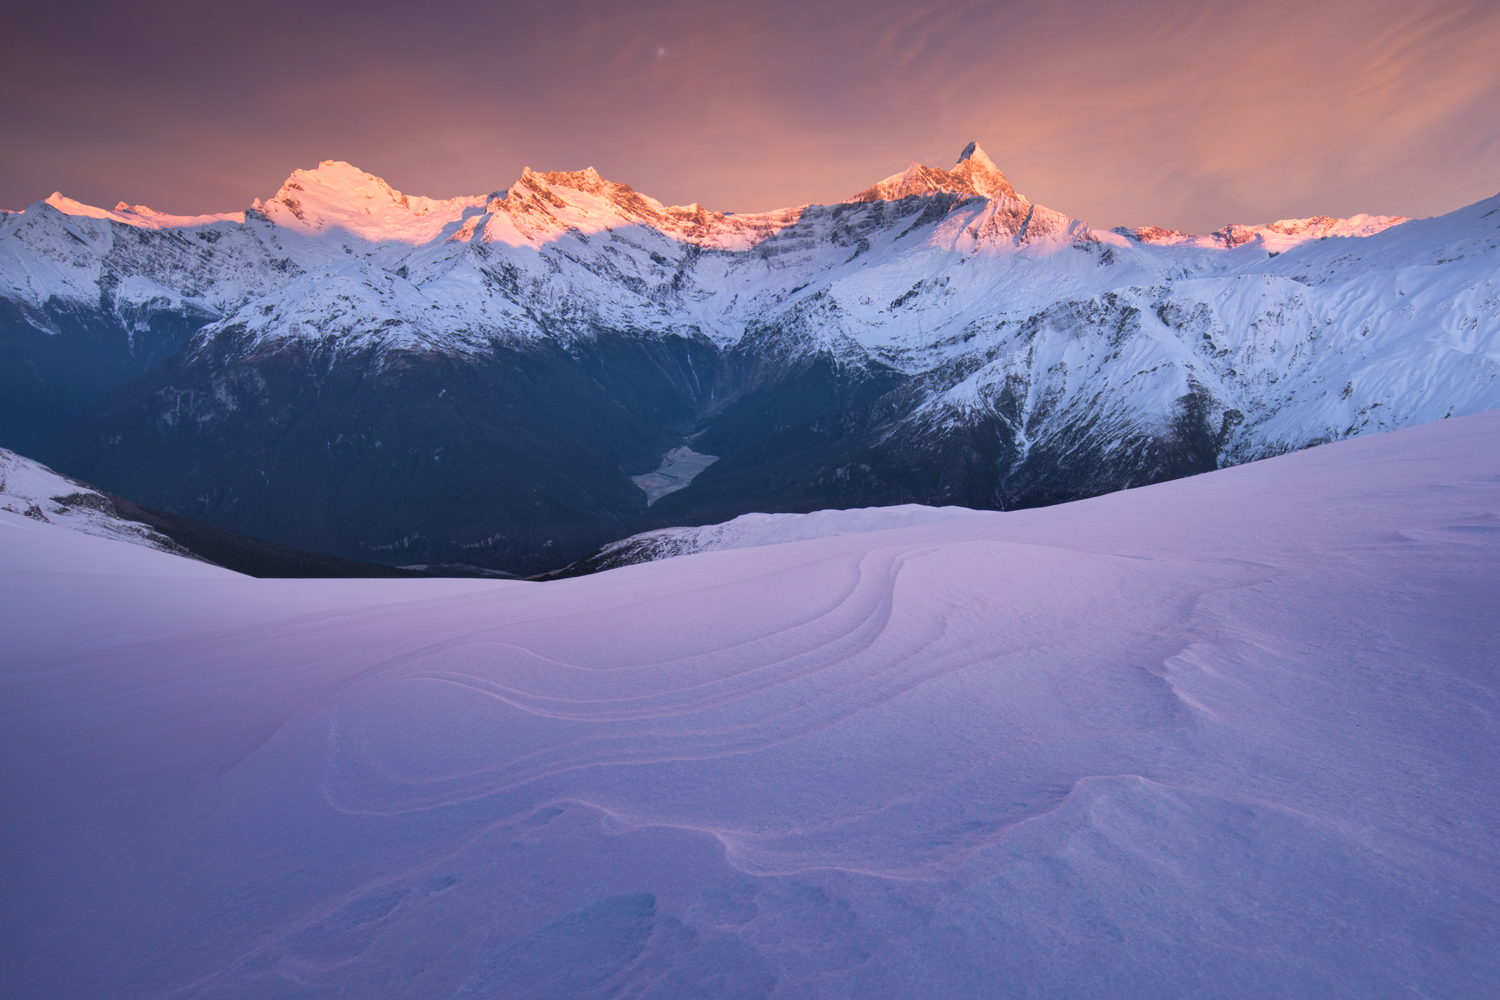 Mount Aspiring sunrise, Matukietukie valley Copyright William Patino